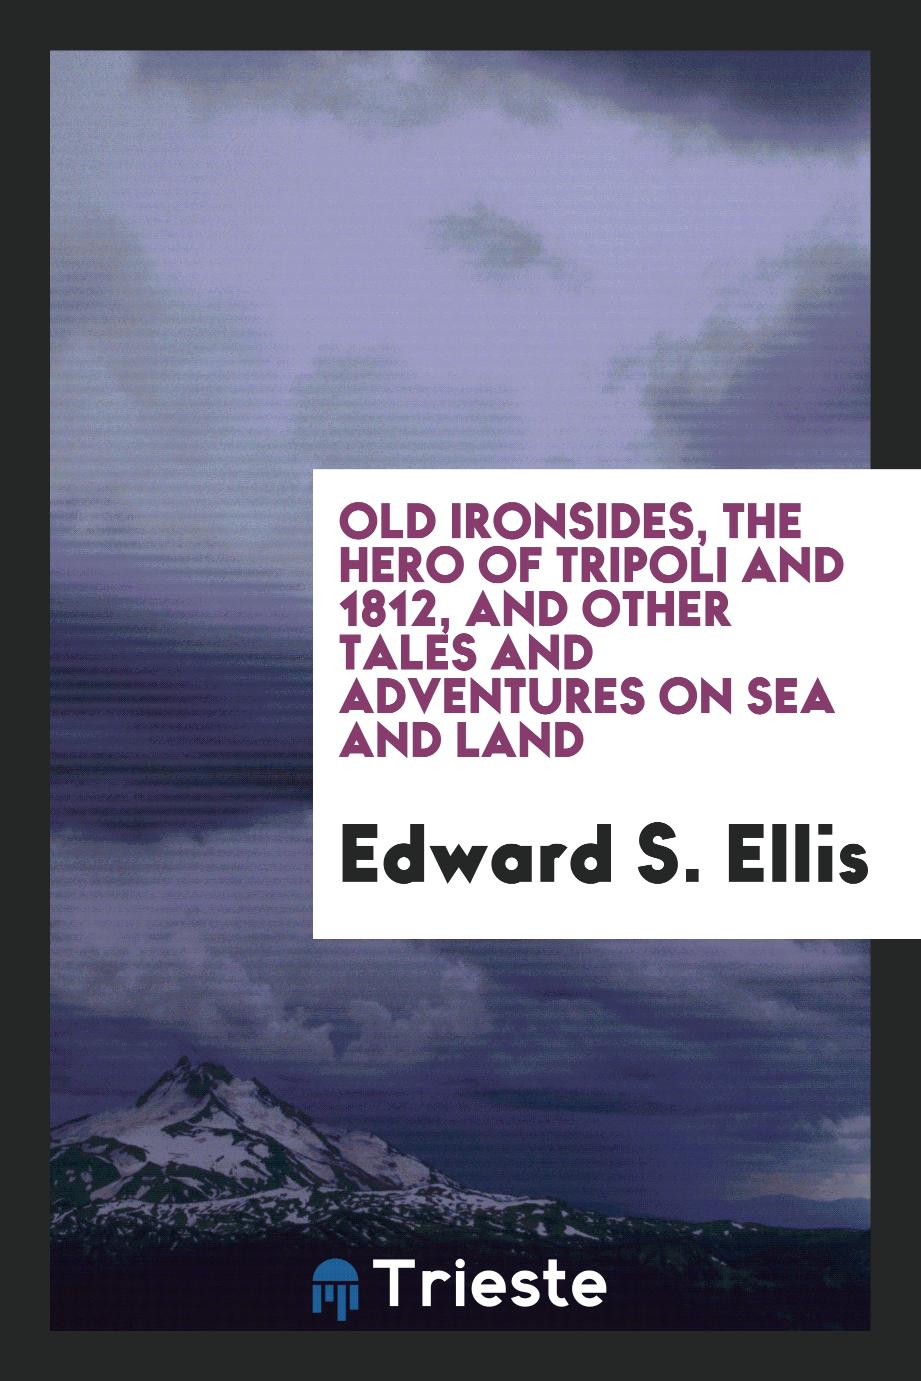 Old Ironsides, the hero of Tripoli and 1812, and other tales and adventures on sea and land